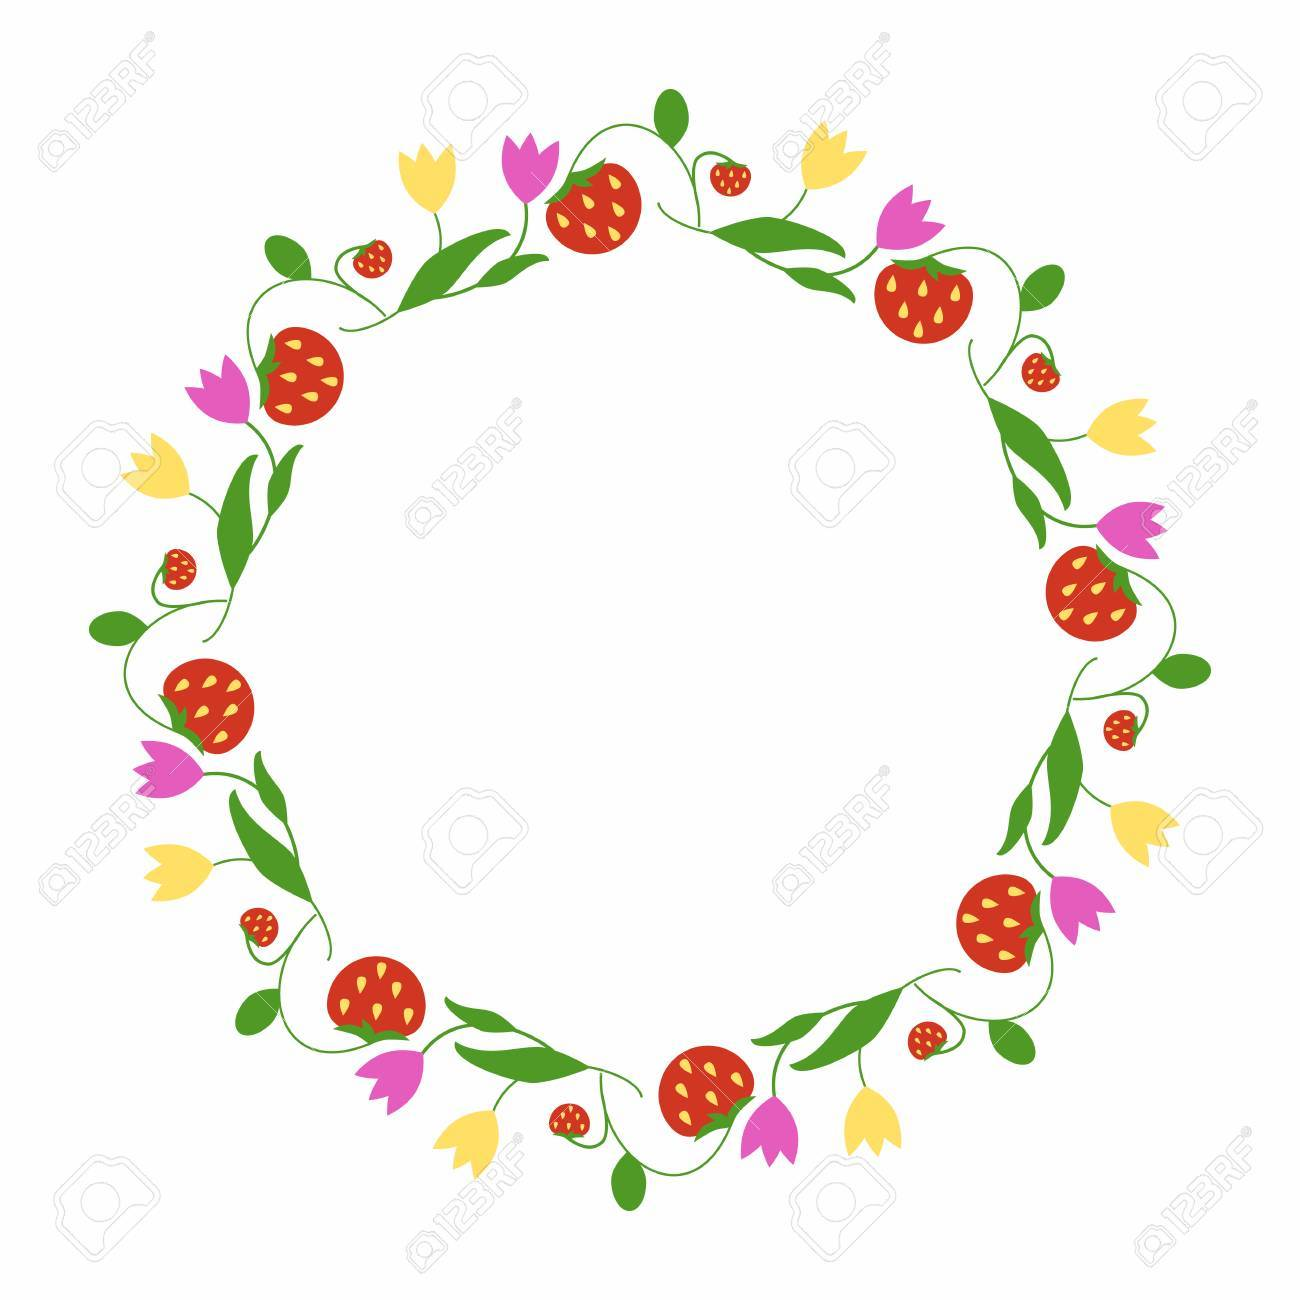 Round frame of flowers and strawberries simple spring decoration of the plant elements in a